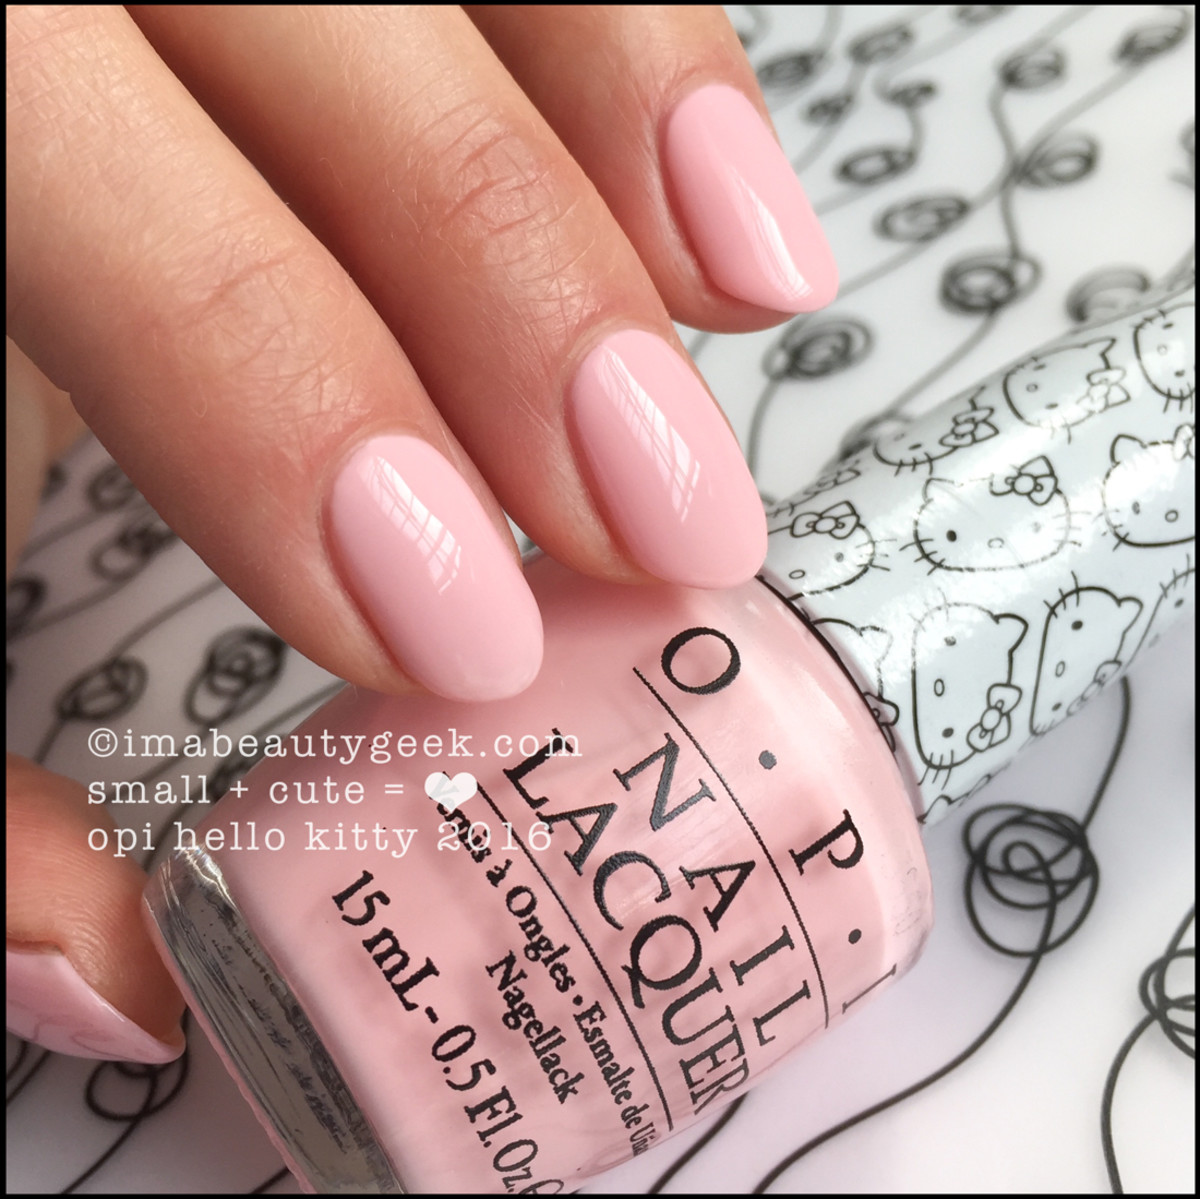 OPI Hello Kitty 2016 Collection_OPI Small plus Cute equals Heart